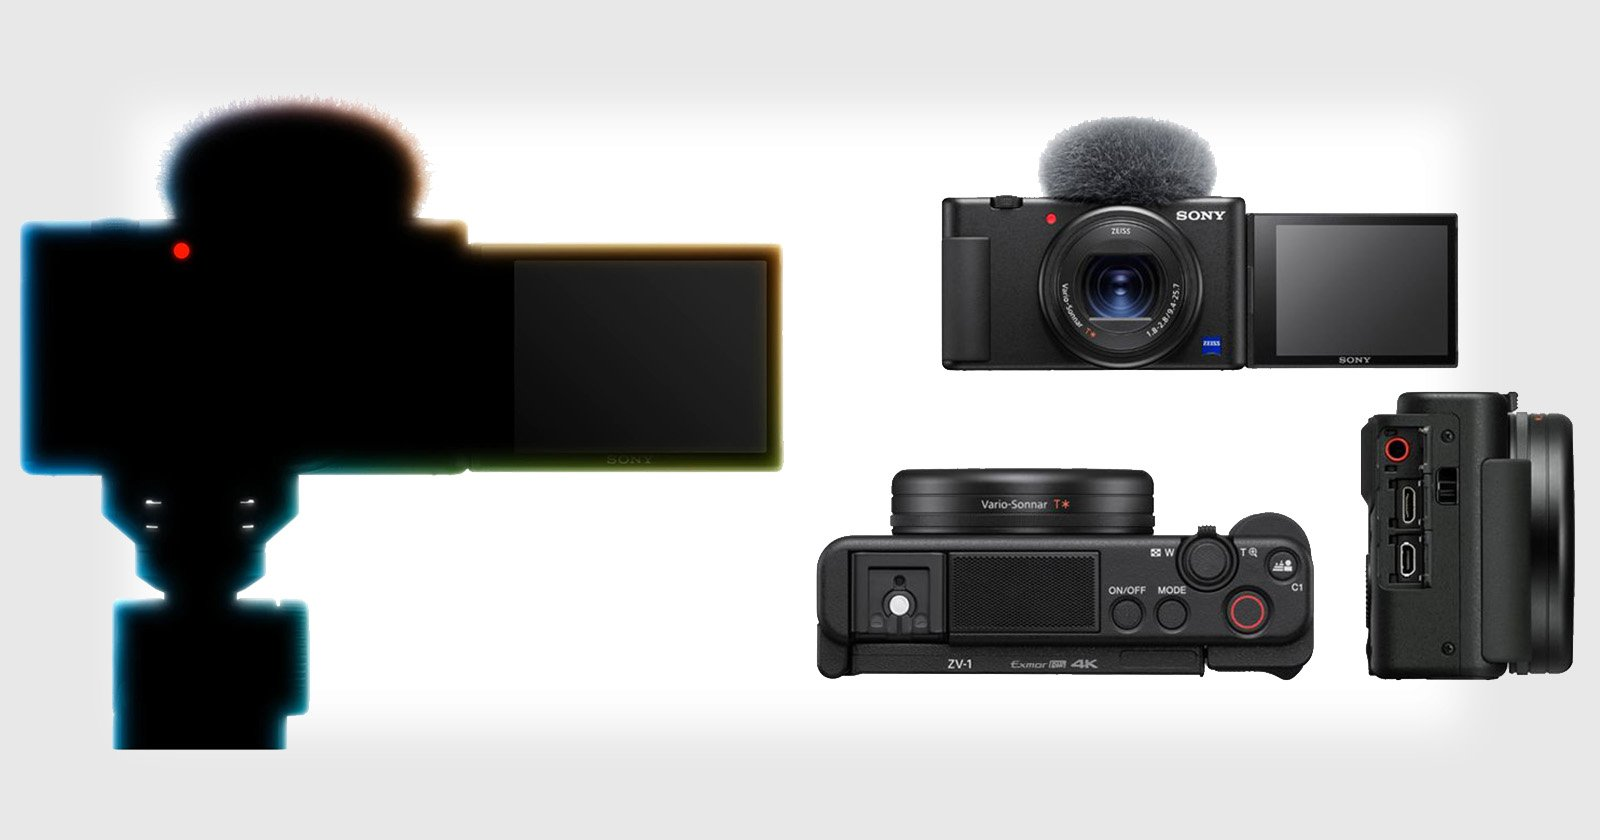 Sony Teases New Compact Camera for Vloggers, Photos Already Leaked - PetaPixel